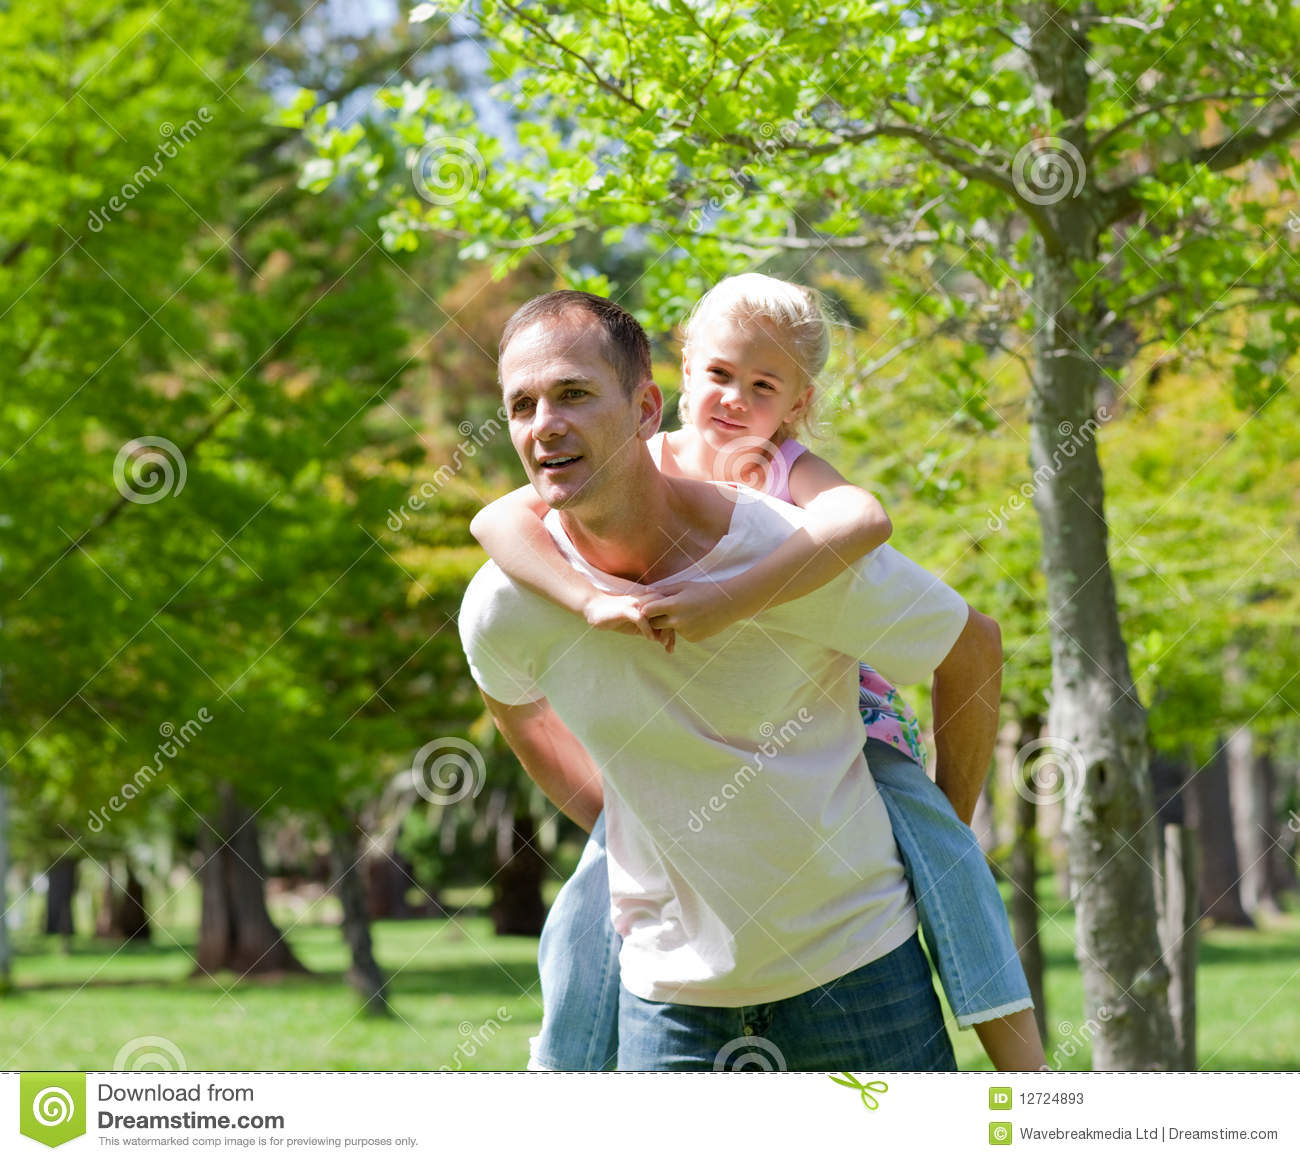 Father Giving His Daughter Piggy-back Ride Stock Image